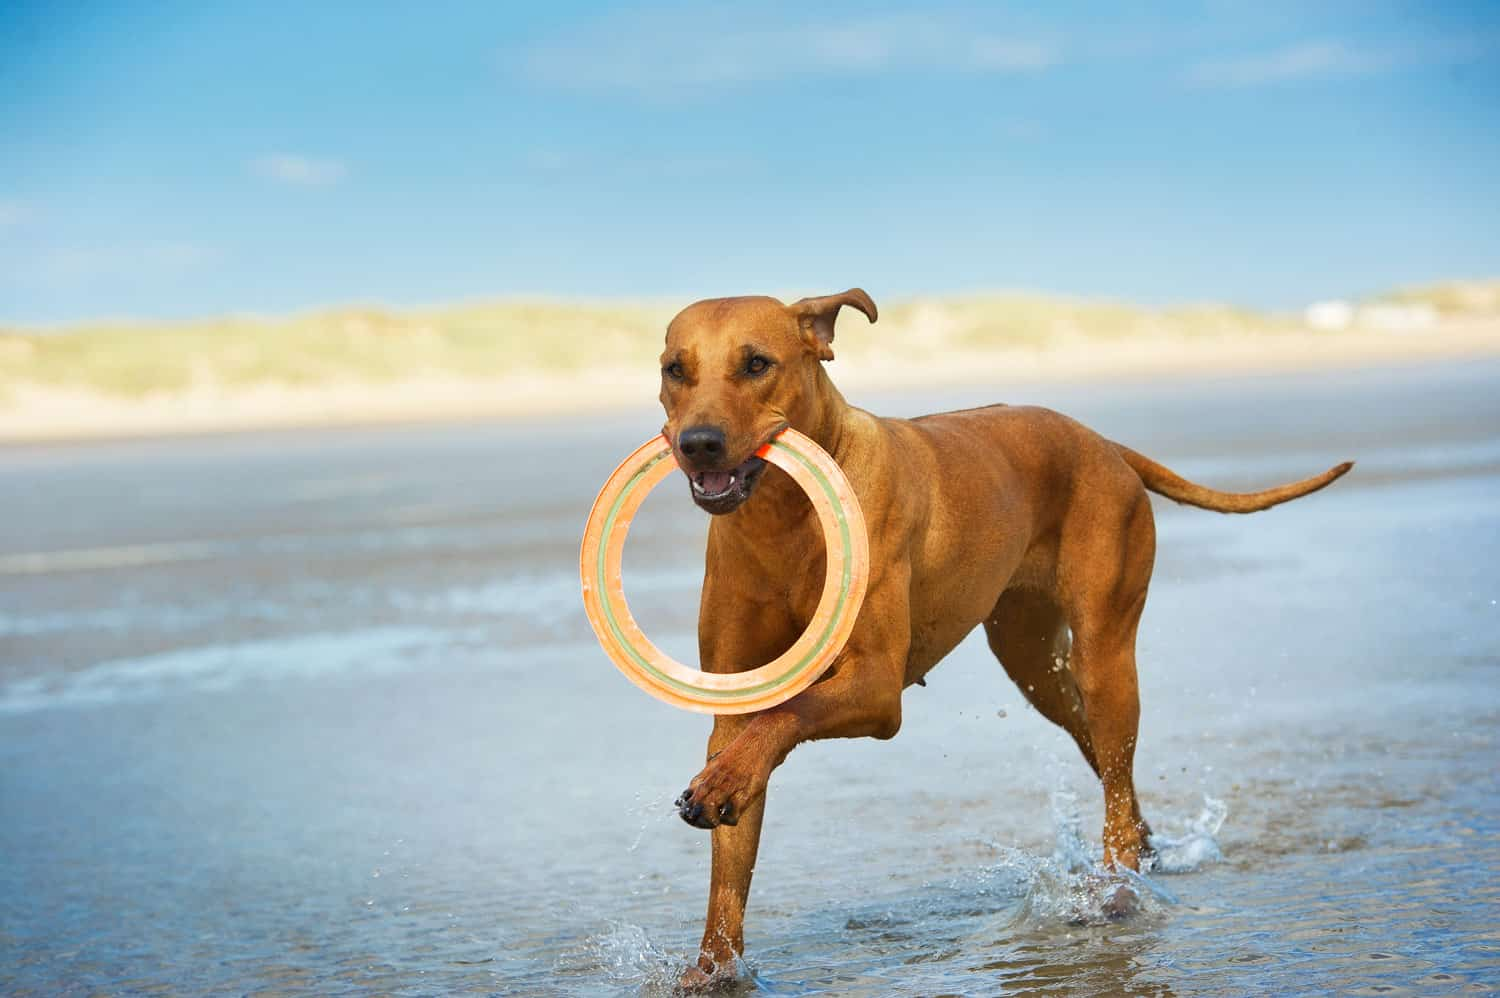 photo showing dog with frisbee